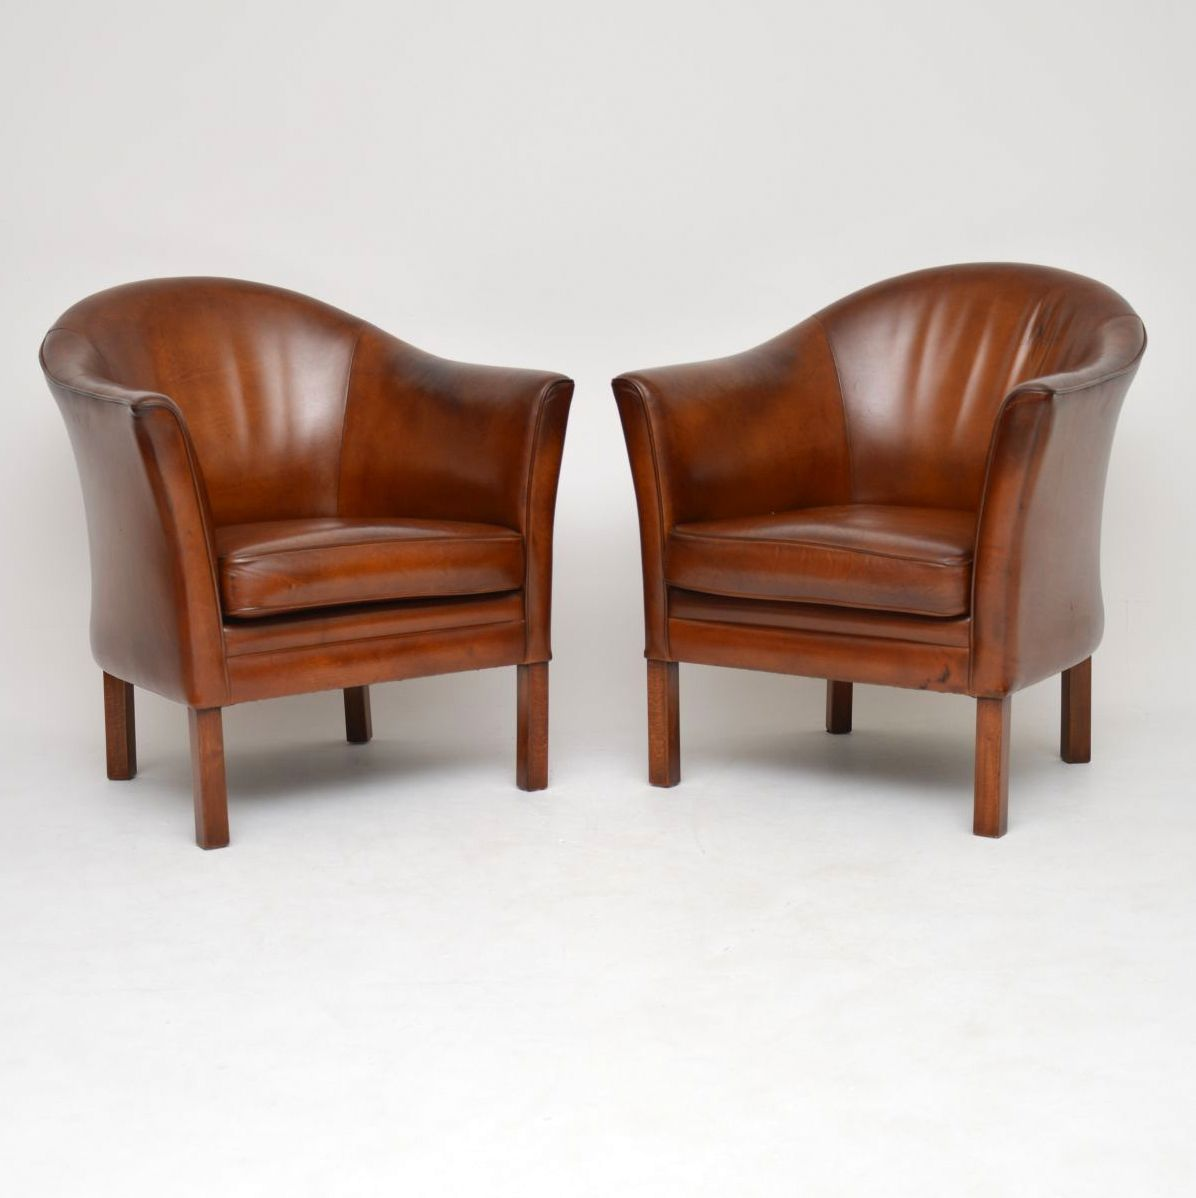 1960's Pair of Danish Vintage Leather Armchairs by Mogens Hansen